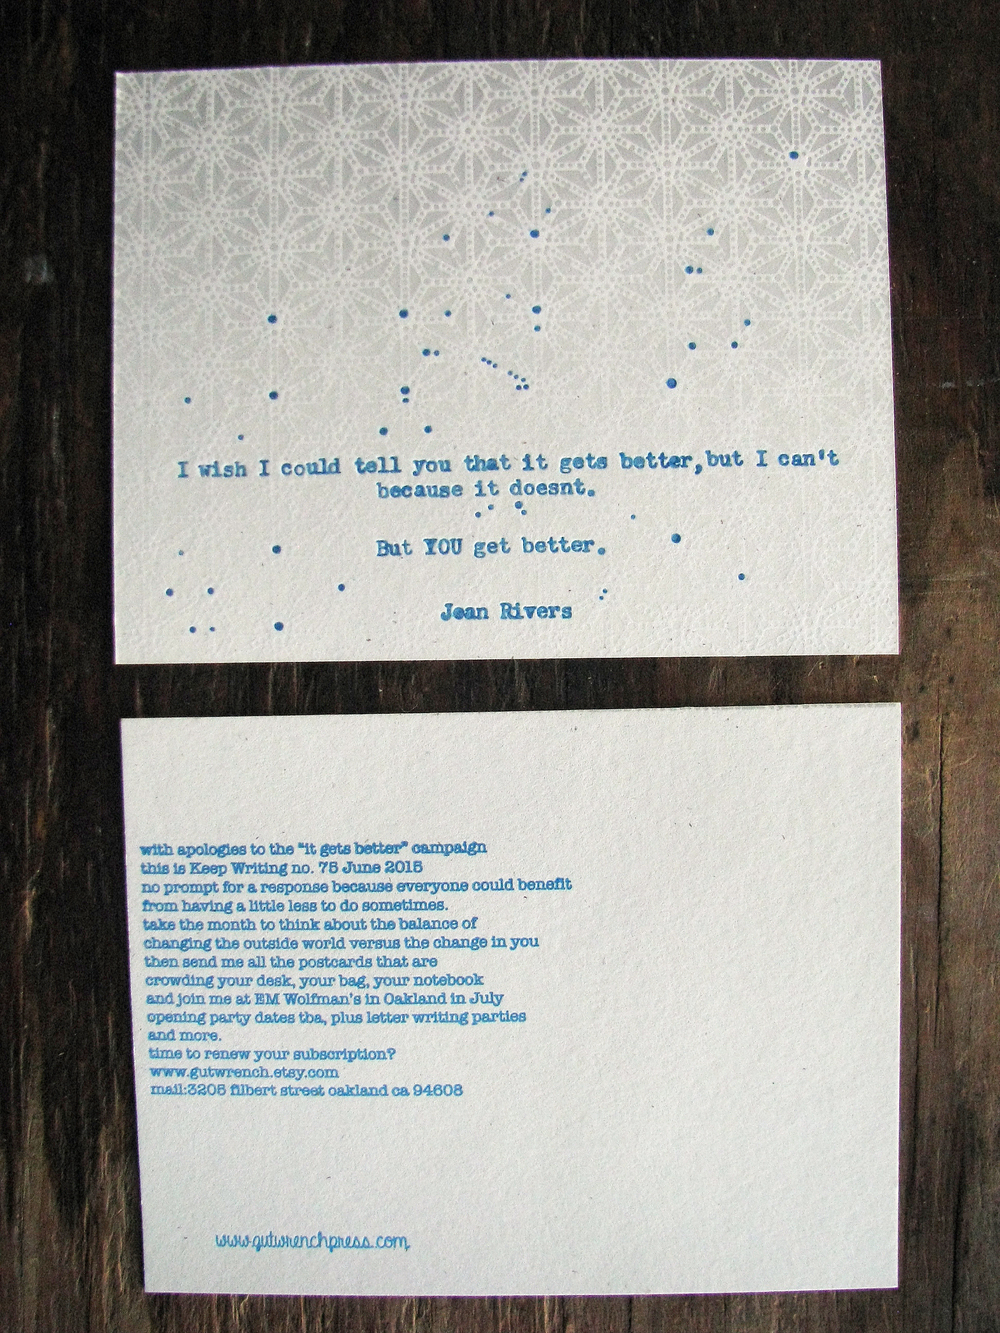 Keep Writing number 75 June 2015 Fluorescent blue and grey on white, with a quote from Joan Rivers